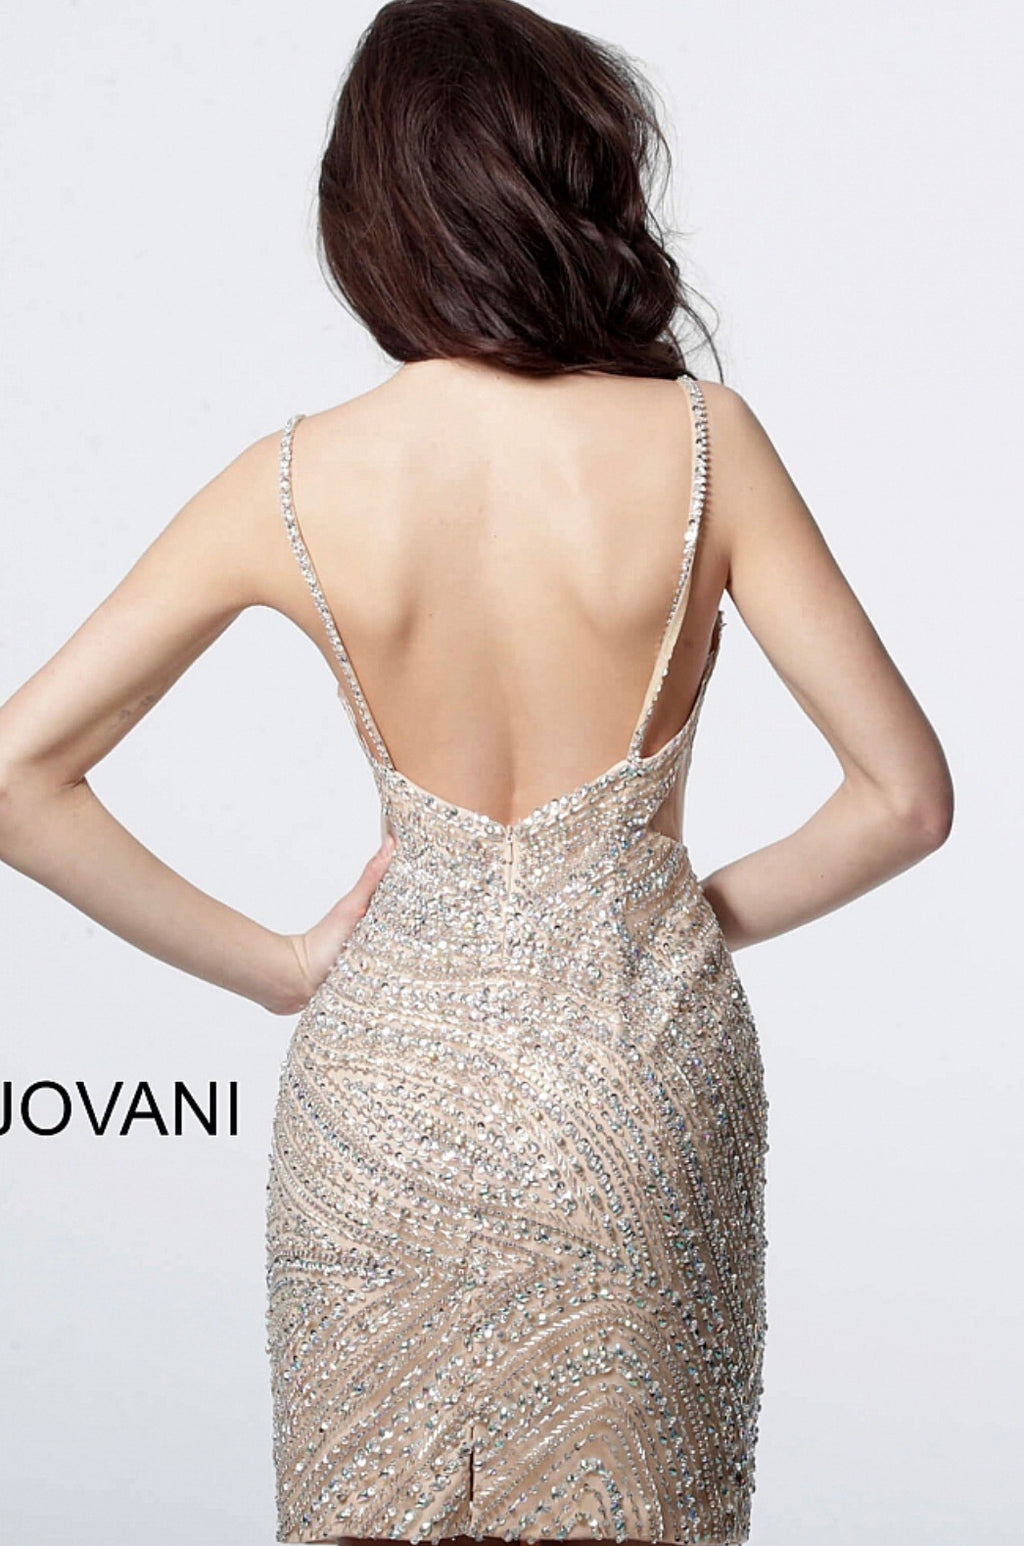 JOVANI 4404 Beaded Cocktail Dress